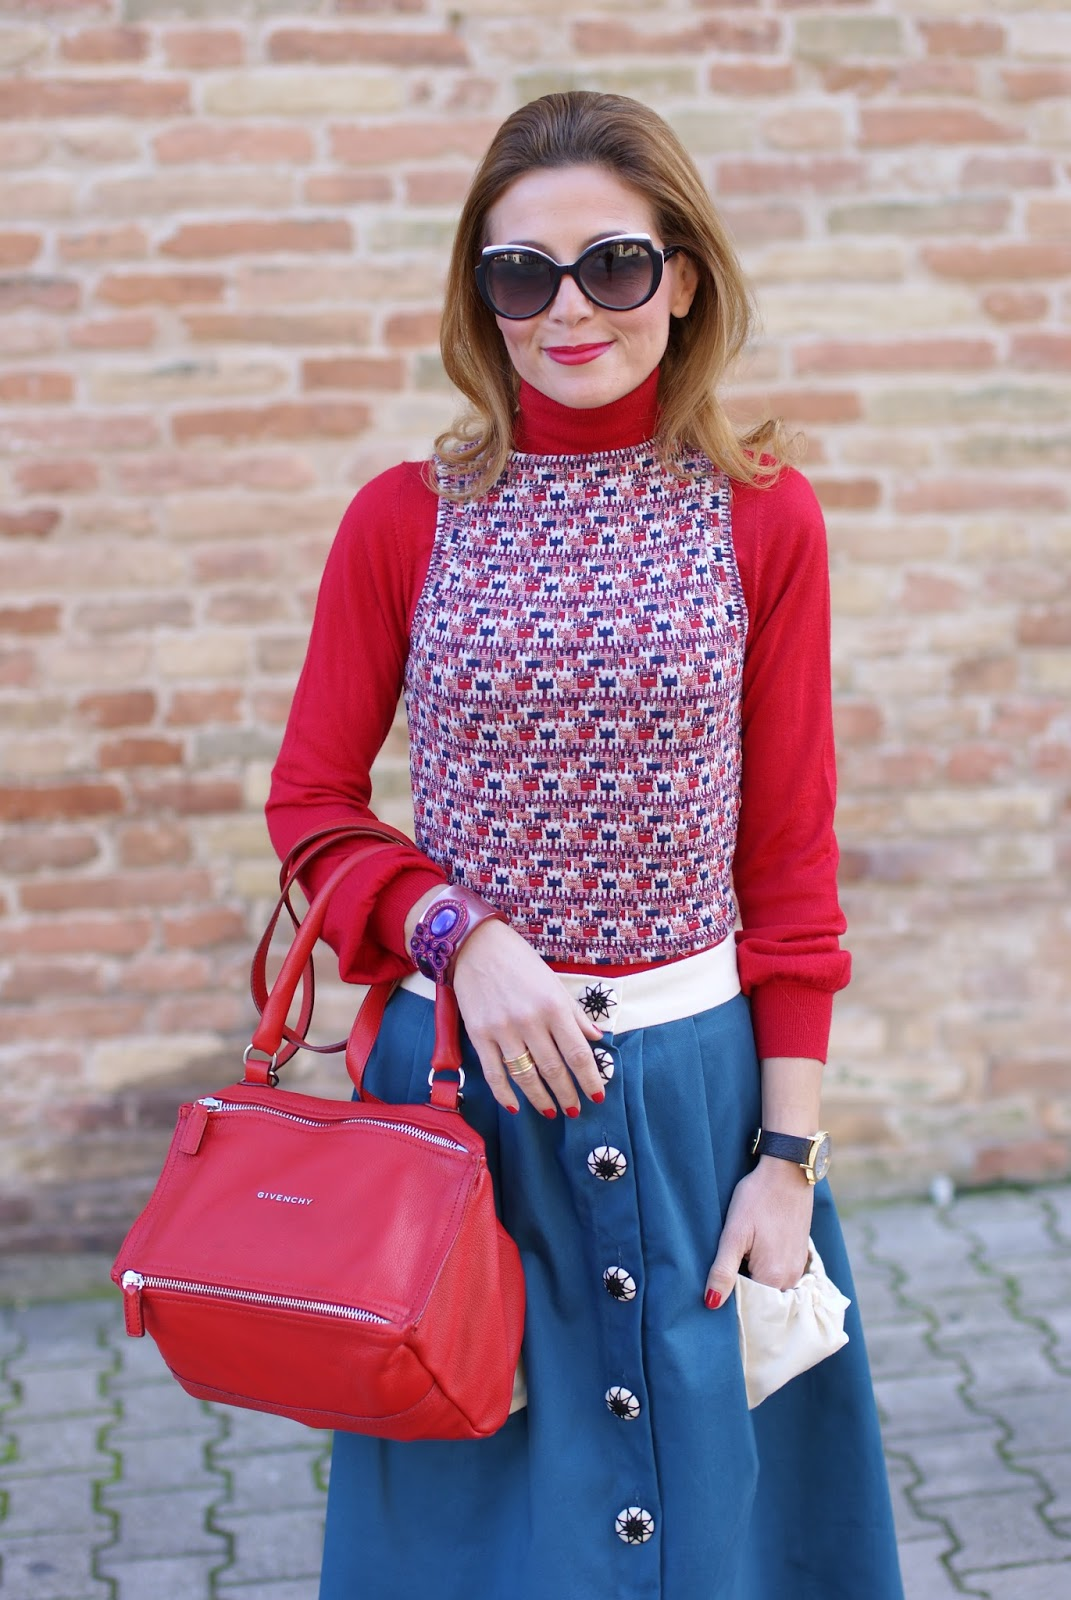 Opposés Complémentaires buttoned midi skirt, Givenchy red Pandora bag and Gioya Bijoux bracelet on Fashion and Cookies fashion blog, fashion blogger style